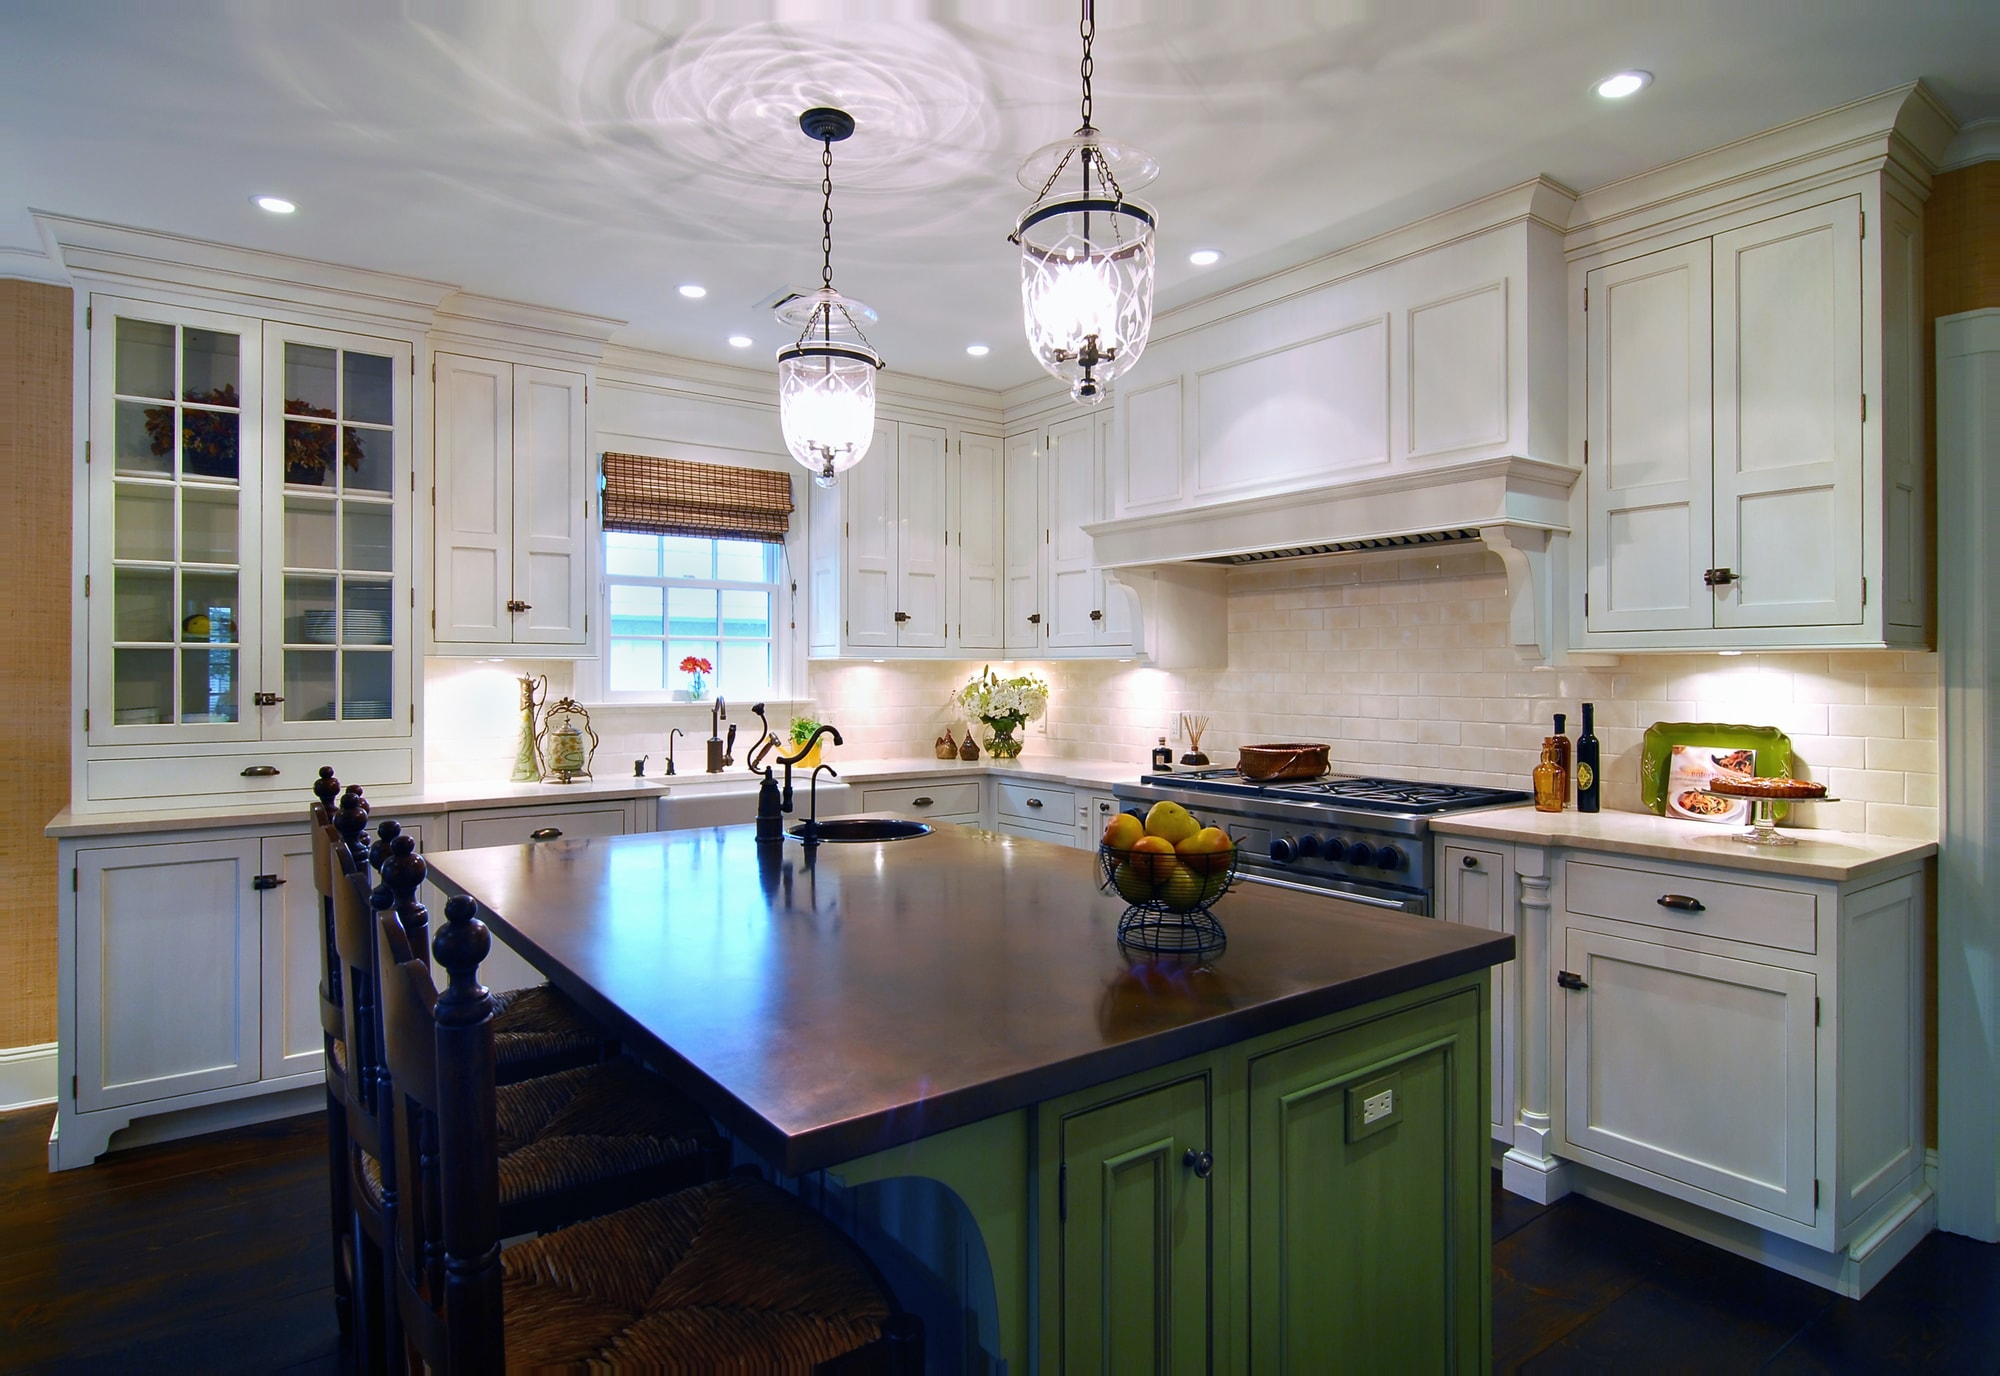 Traditional style kitchen island with vintage faucet